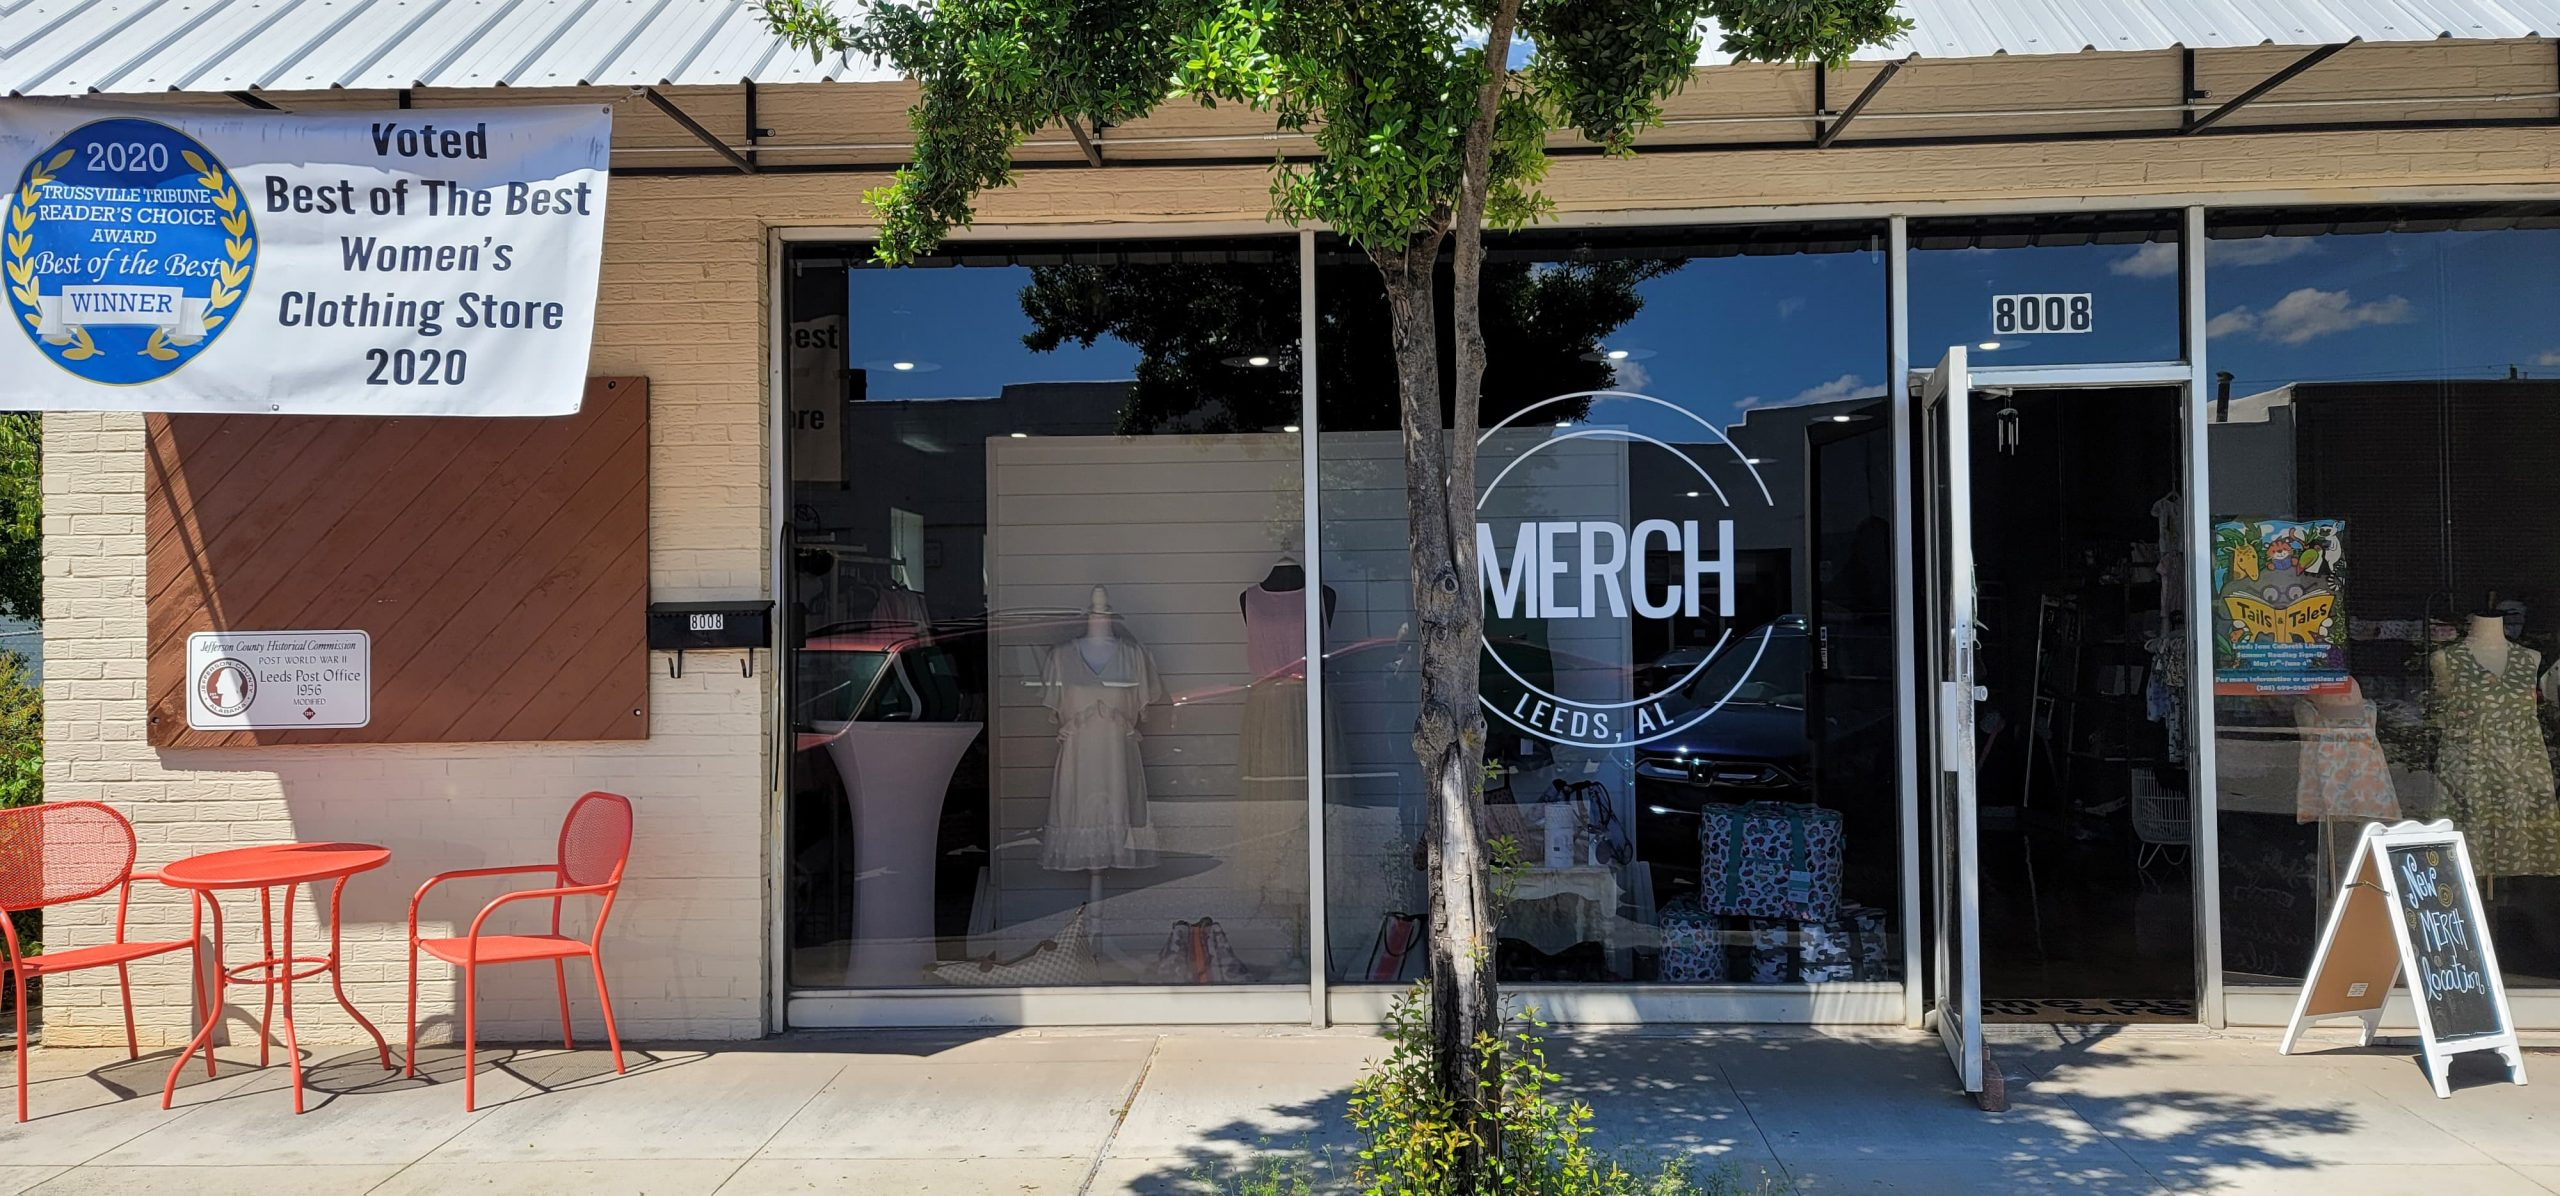 PHOTOS: Leeds boutique moves to larger space on Parkway Drive